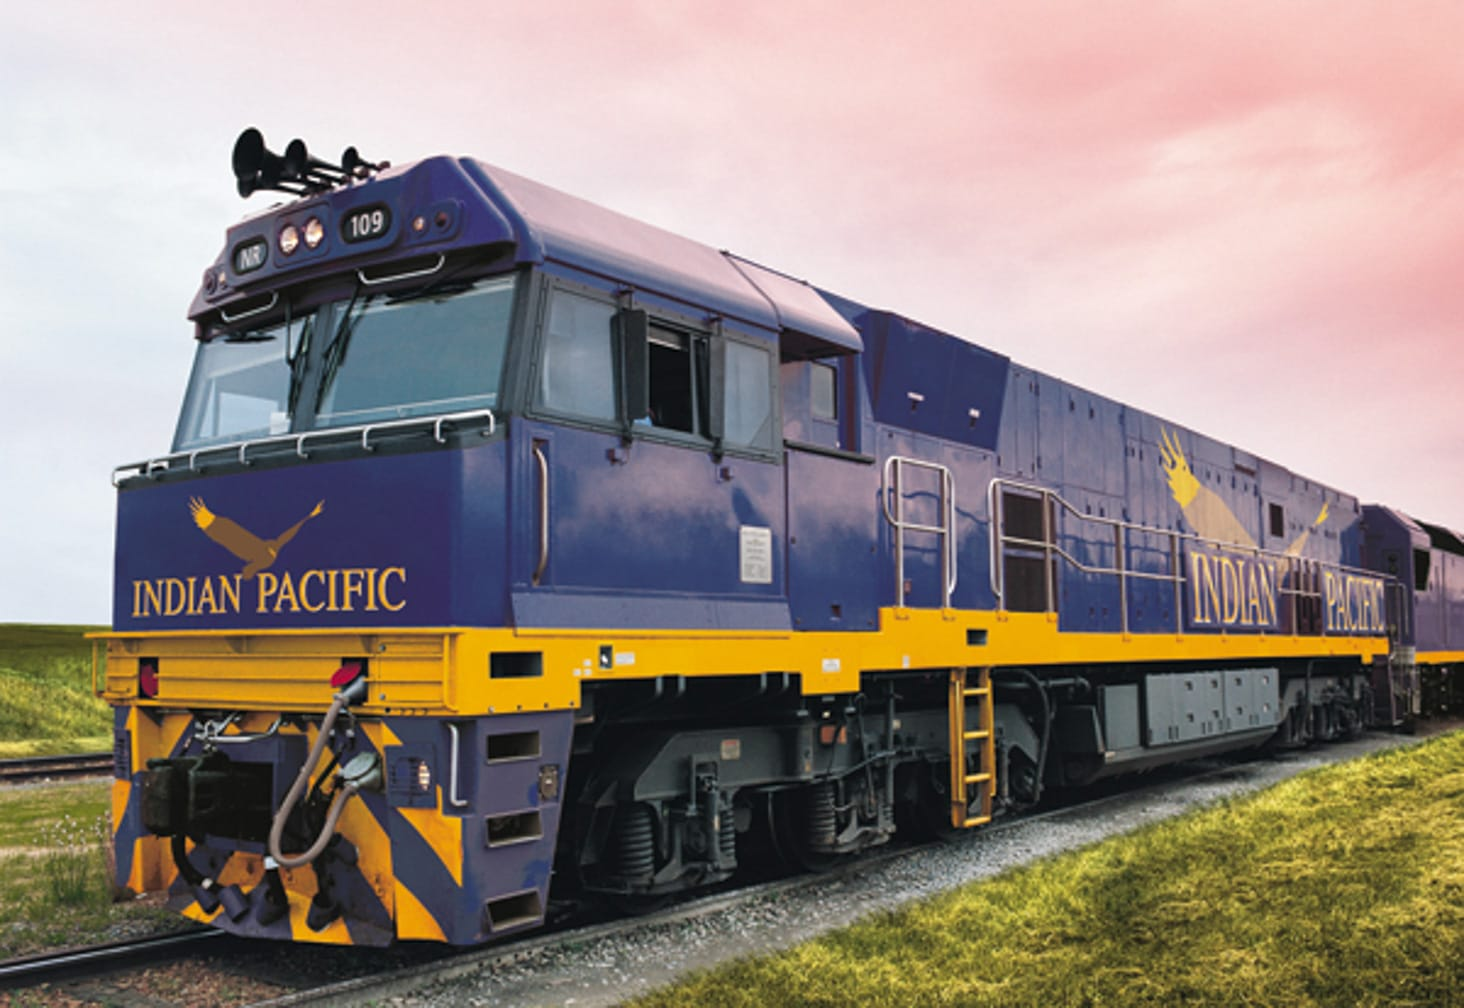 Indian Pacific locomotive on the Luxury Down Under journey